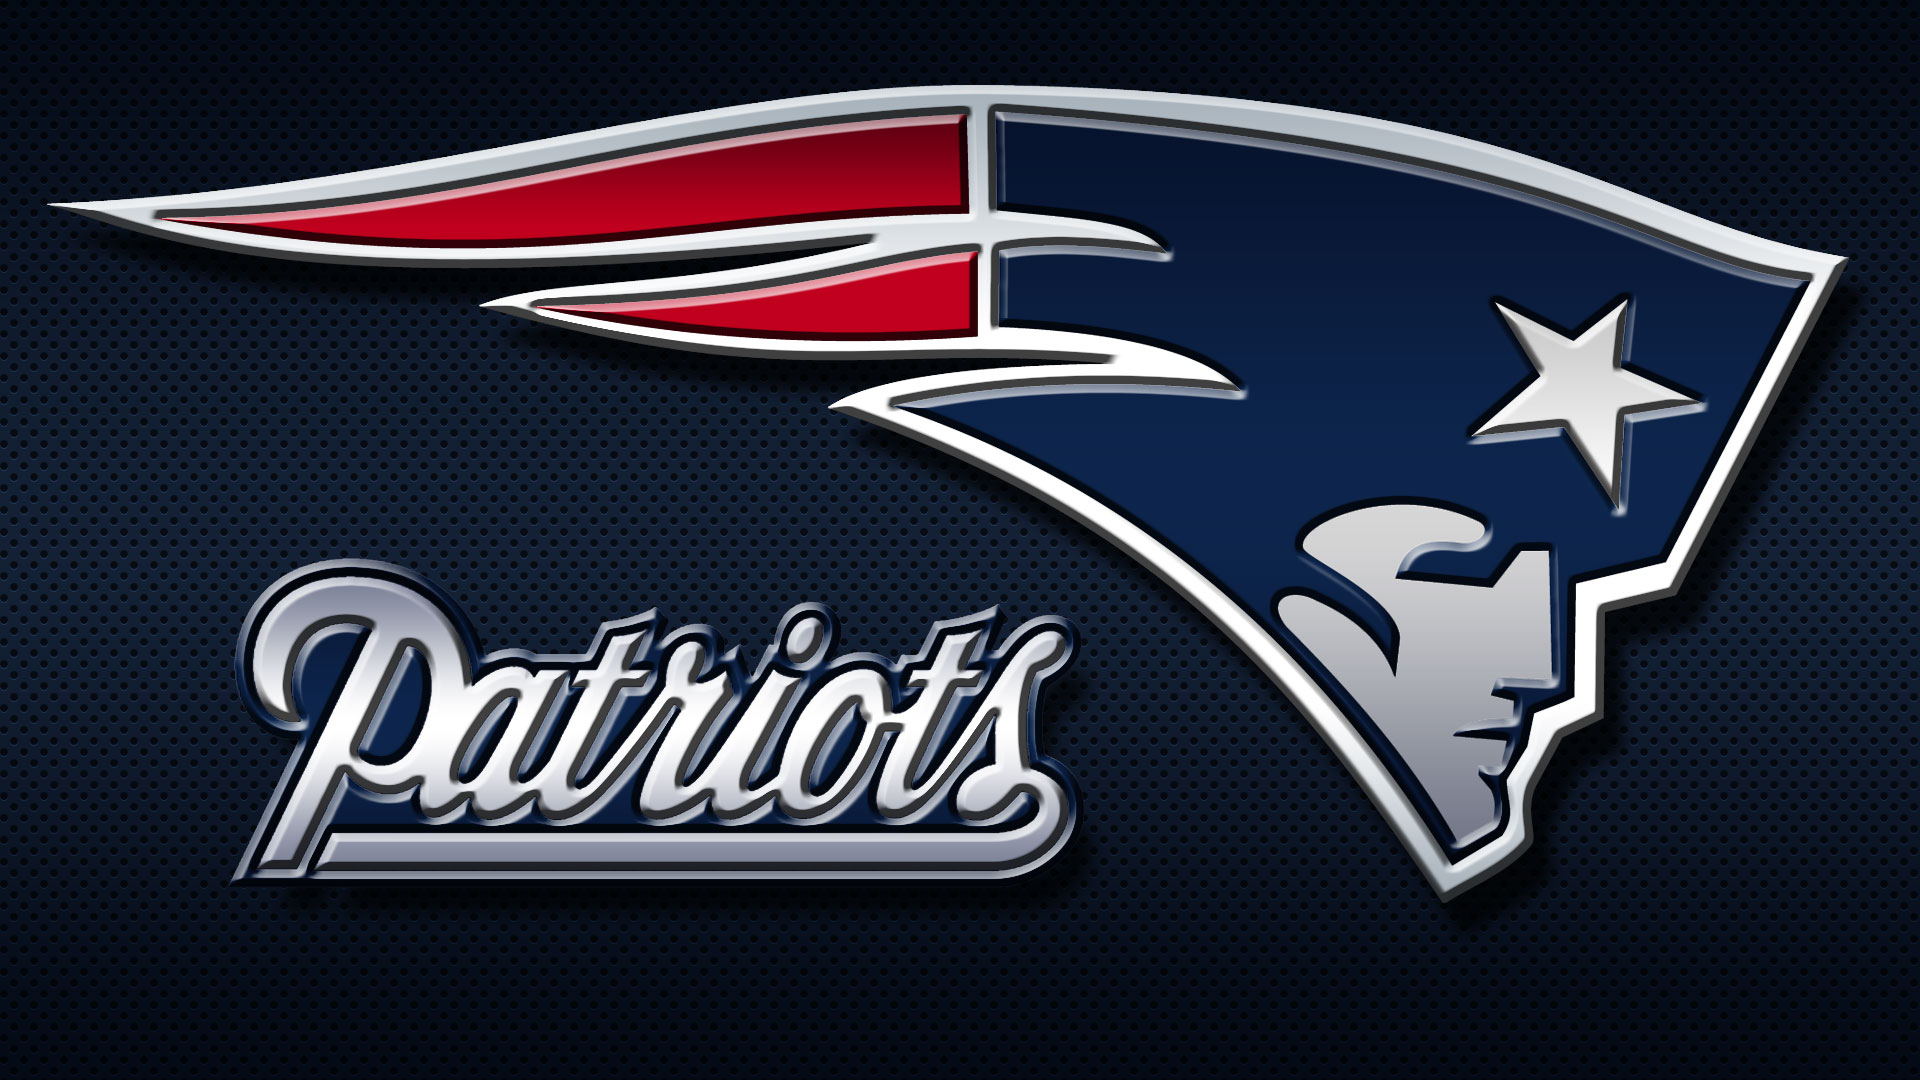 Patriots logo by Balsavor on DeviantArt